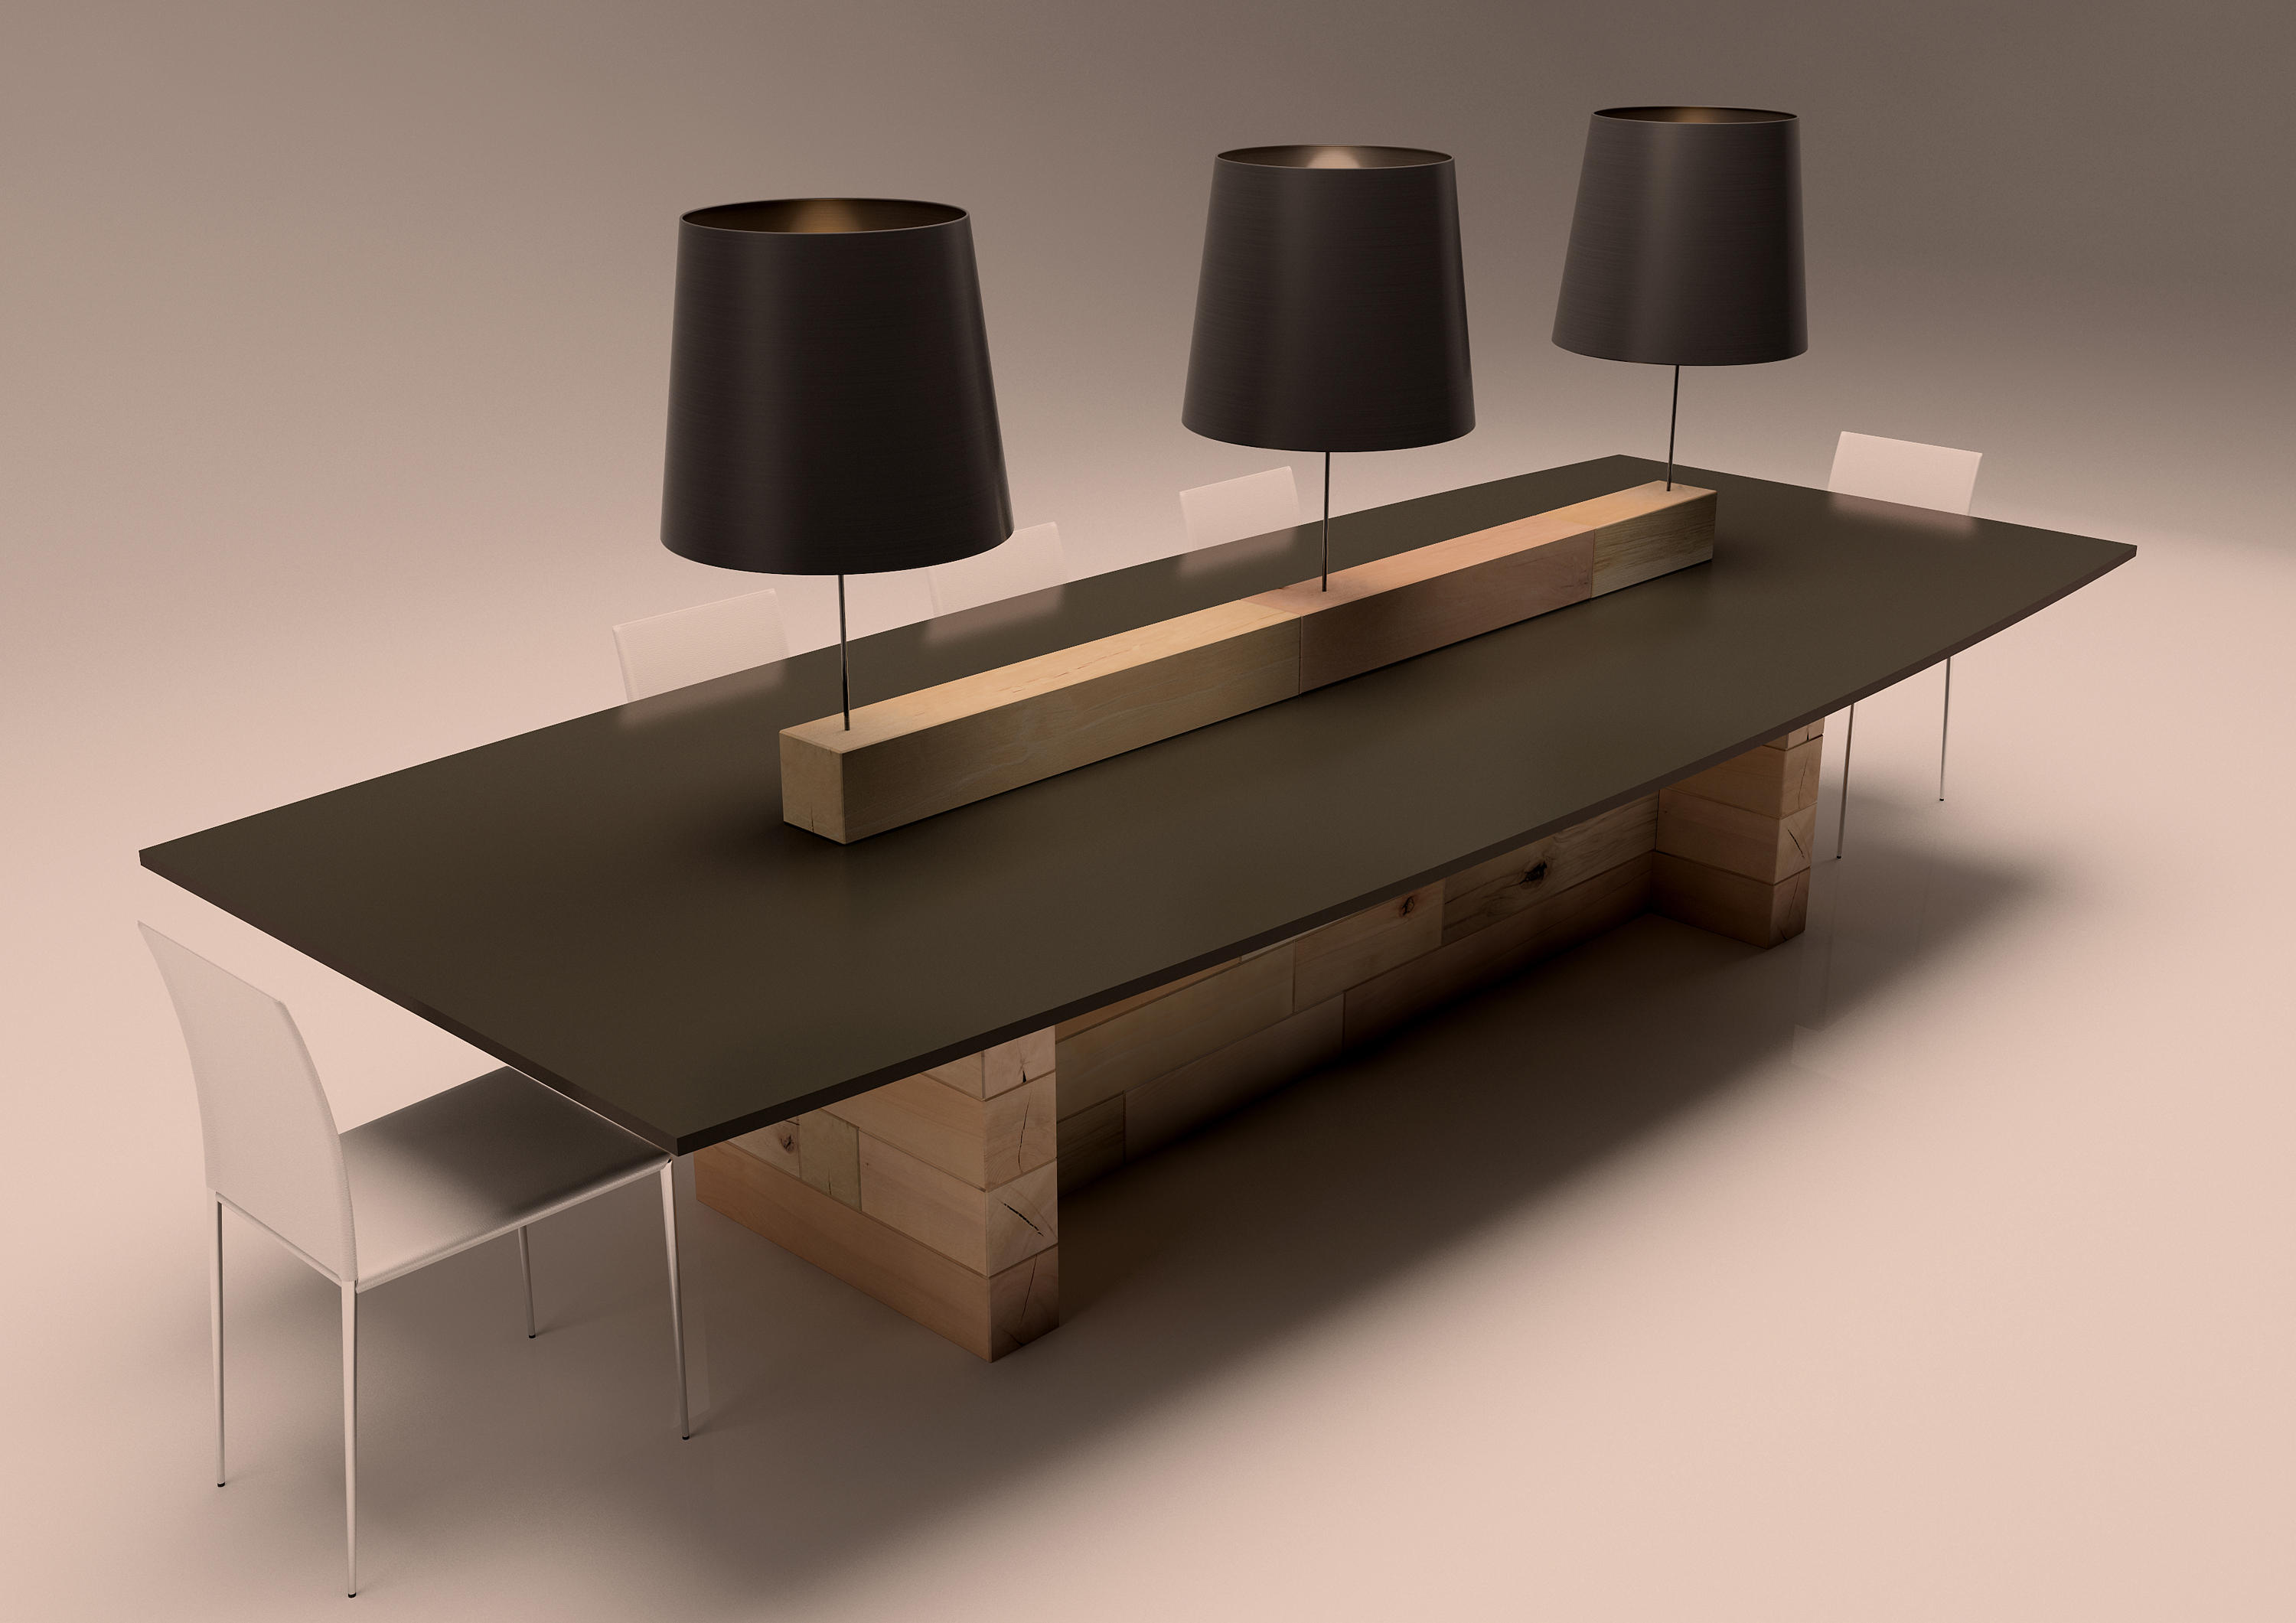 Table à Rallonge Design Craftwand Study Table Design Contract Tables From